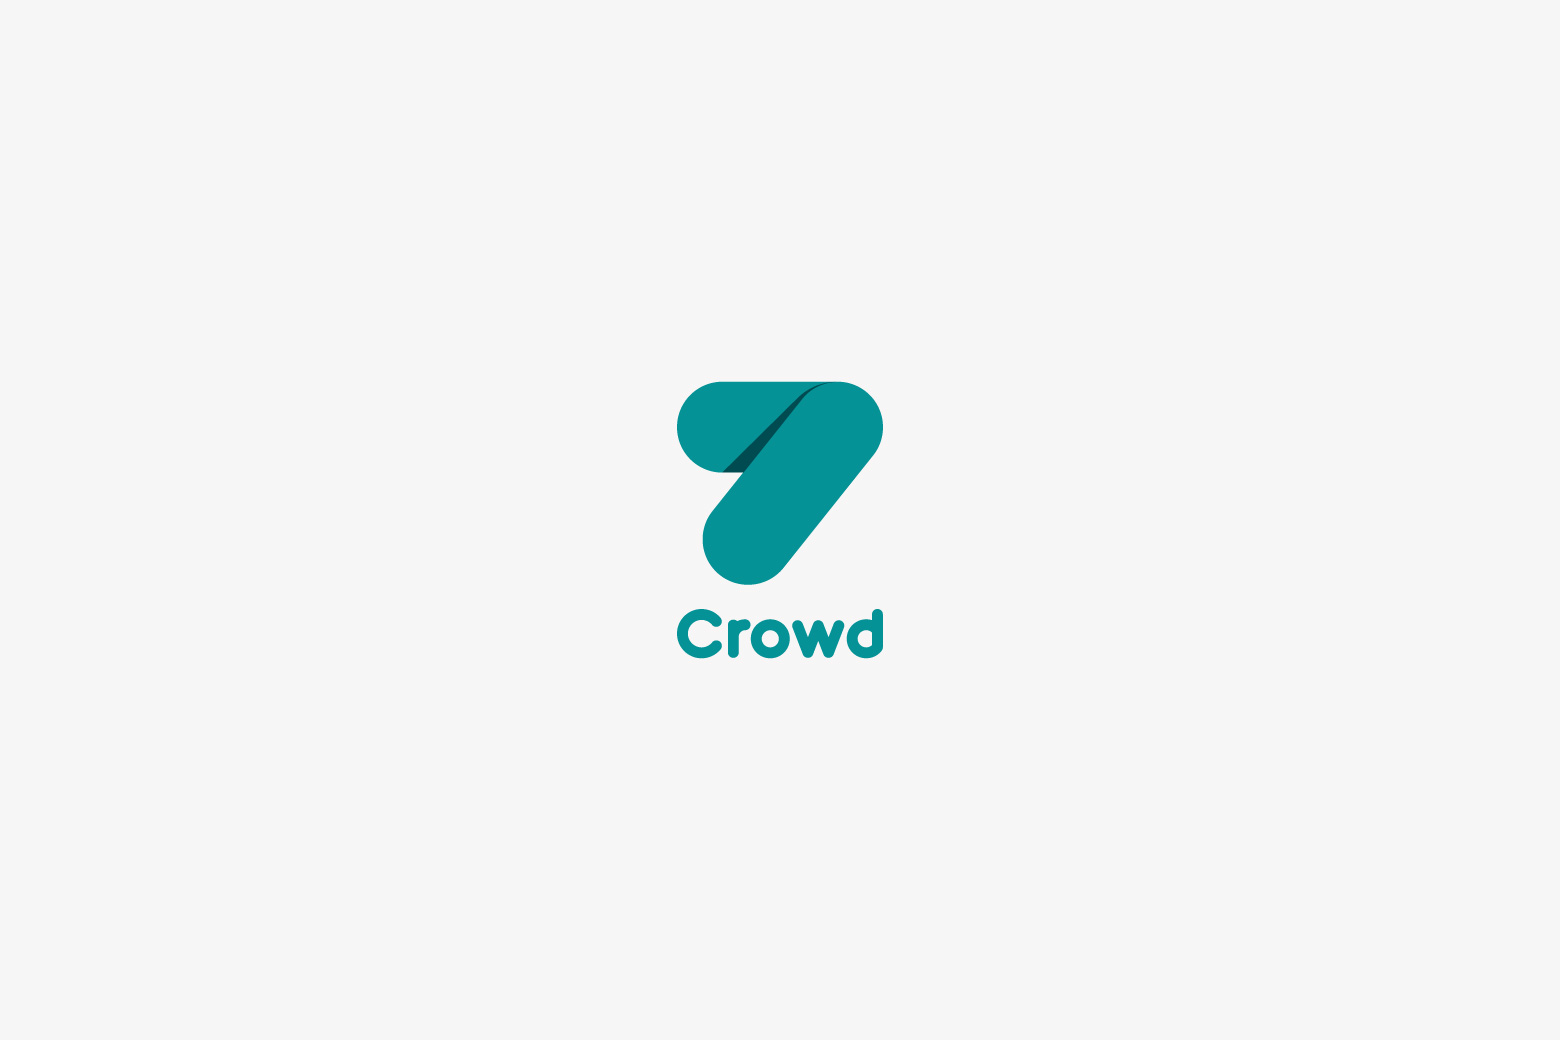 7Crowd_logo_color@2x